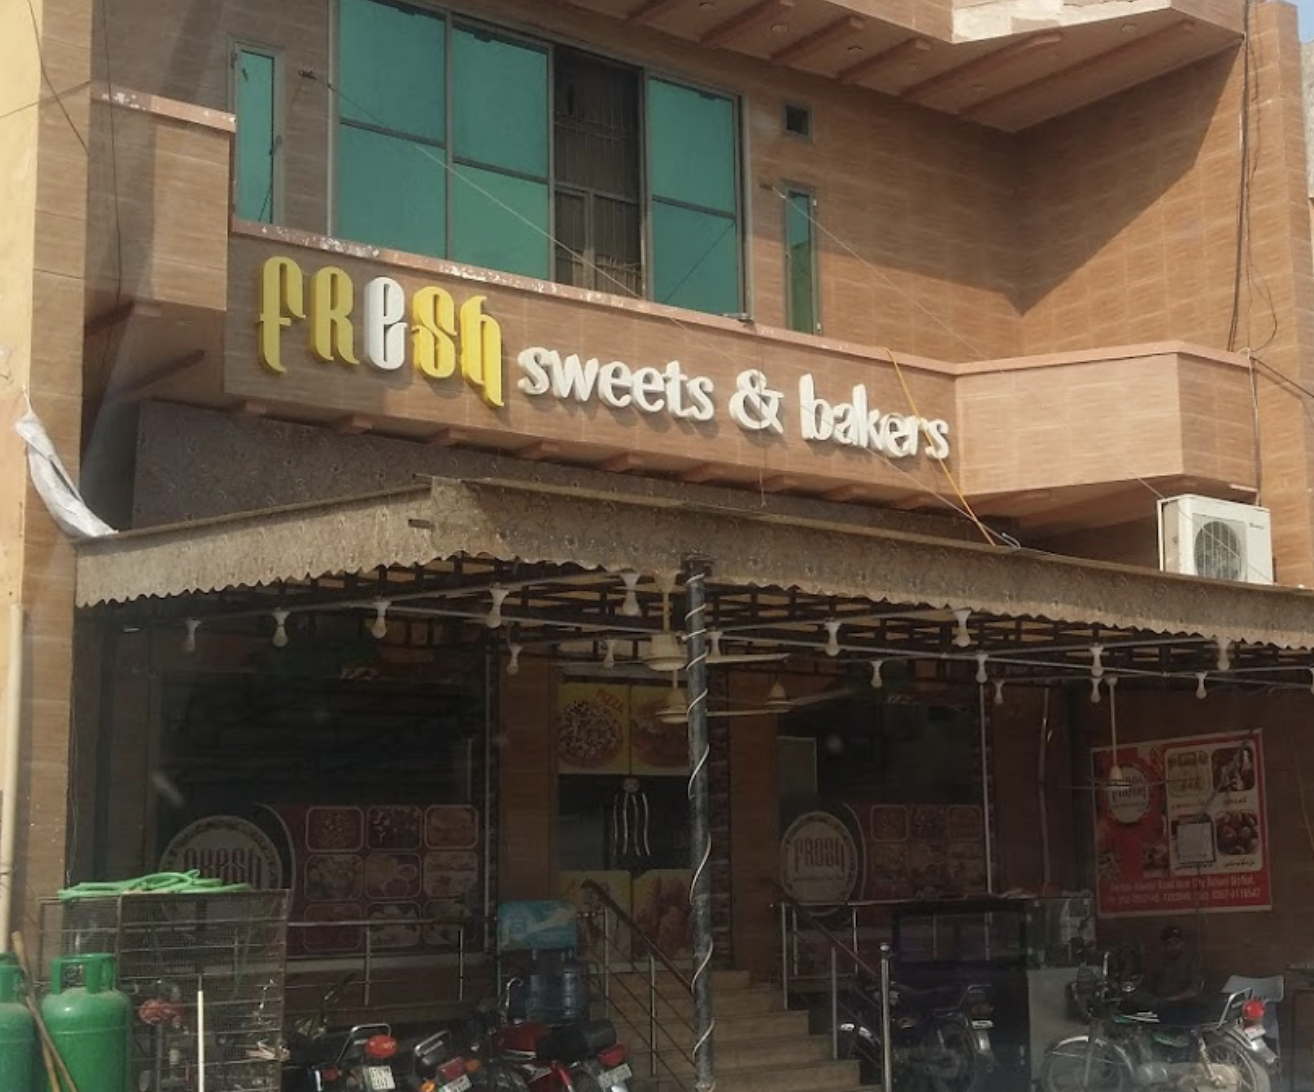 Fresh Sweets & Bakers